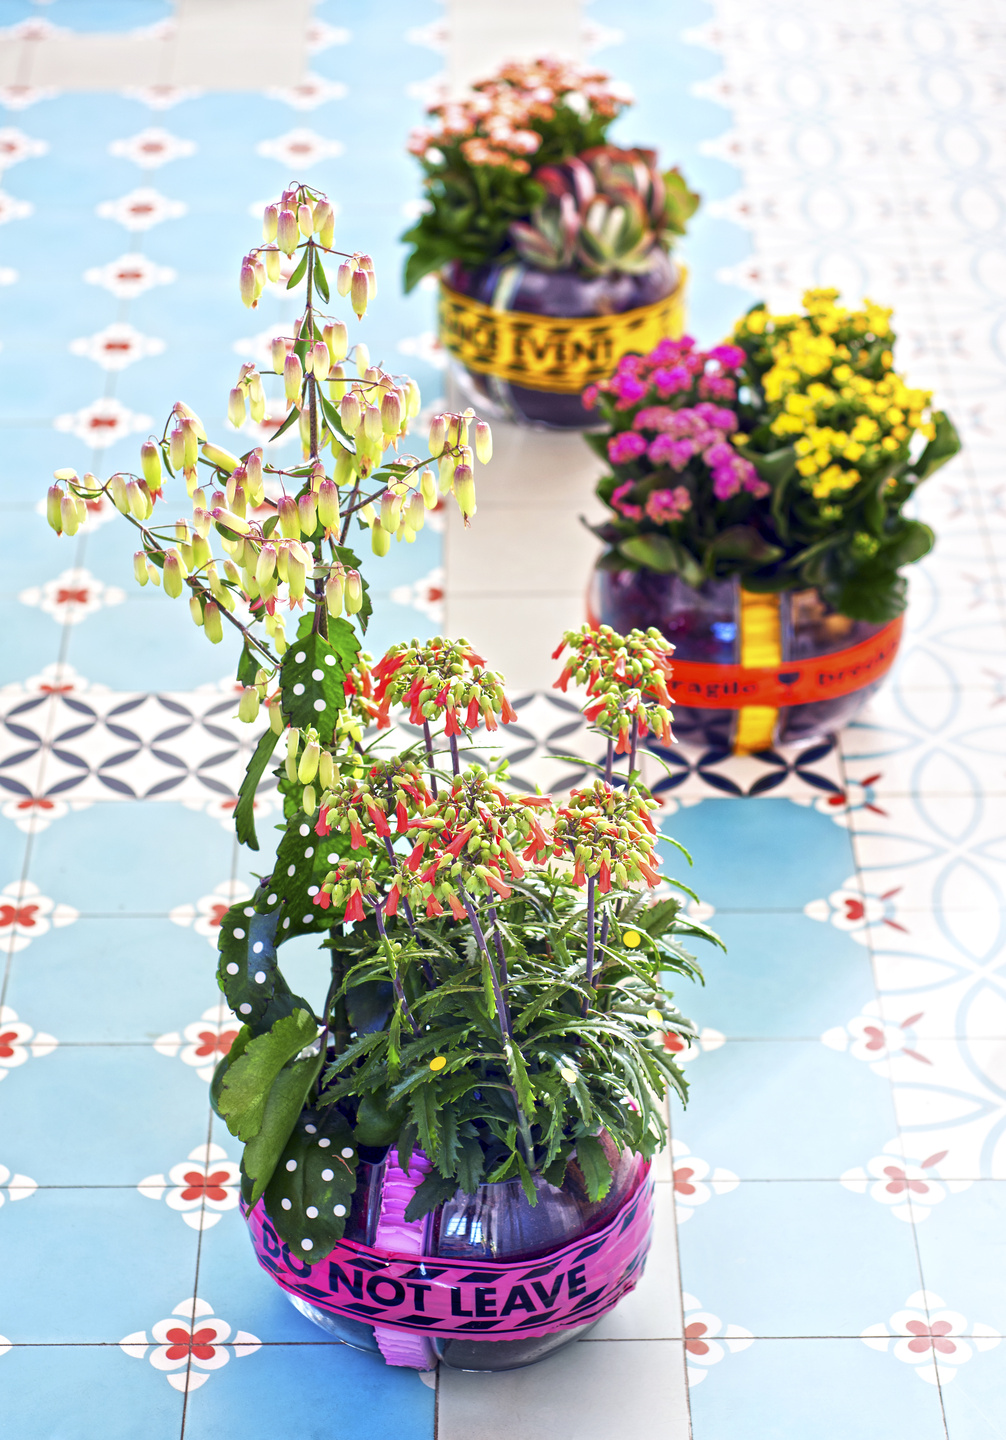 July 2017: Kalanchoe Houseplant of the Month   Flower Council on cabbage house plant, opuntia house plant, lantana house plant, mandevilla house plant, acacia house plant, sage house plant, zinnia house plant, kentia palm house plant, carnation house plant, crossandra house plant, sansevieria house plant, camellia house plant, shrimp plant house plant, fittonia house plant, holly house plant, buddhist pine house plant, cast iron plant house plant, periwinkle house plant, cereus house plant, crassula house plant,